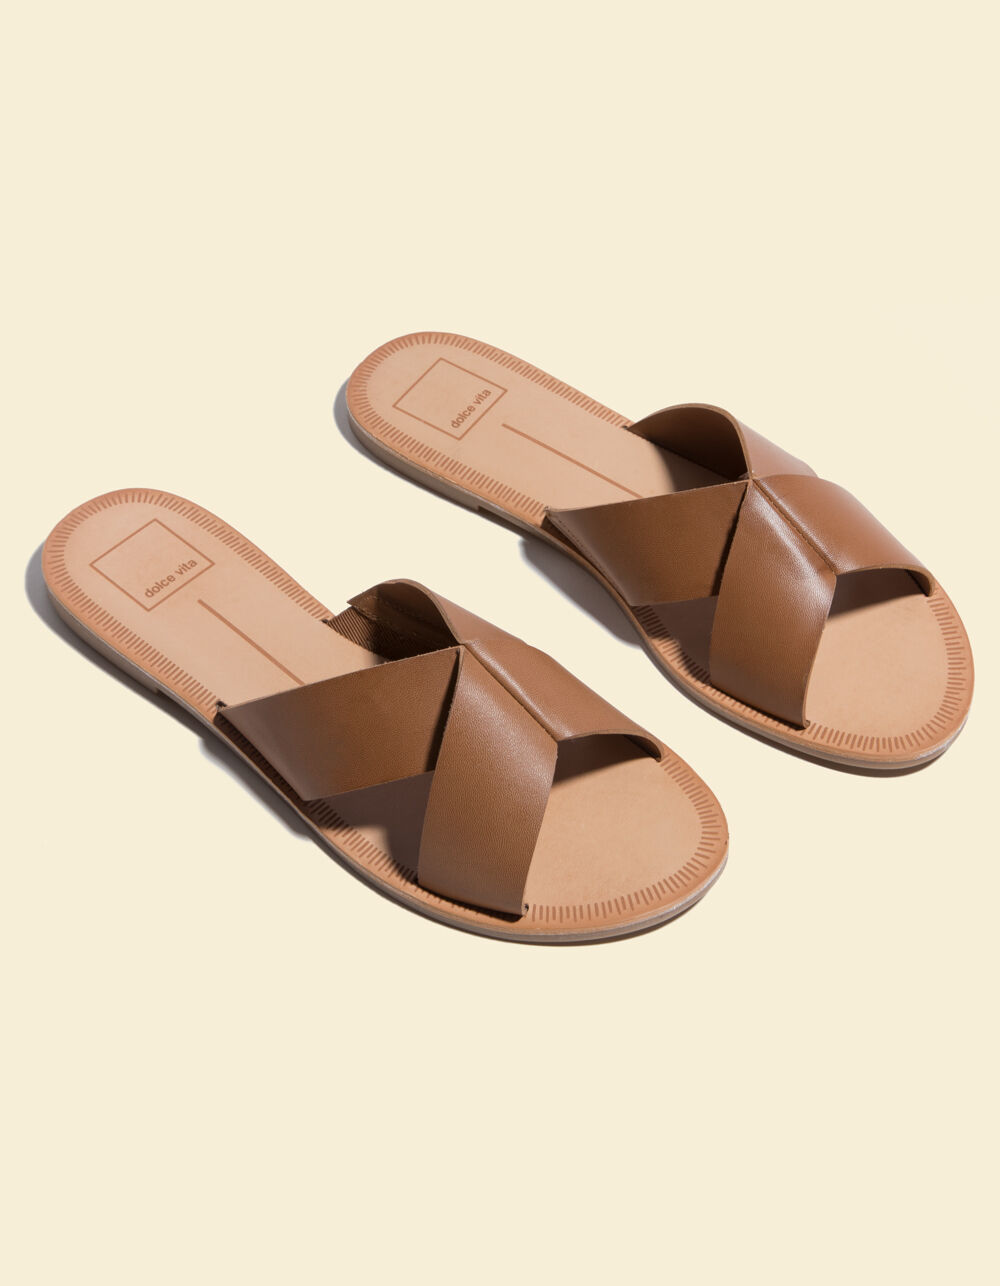 Image of DOLCE VITA CHAIA CARAMEL SANDALS